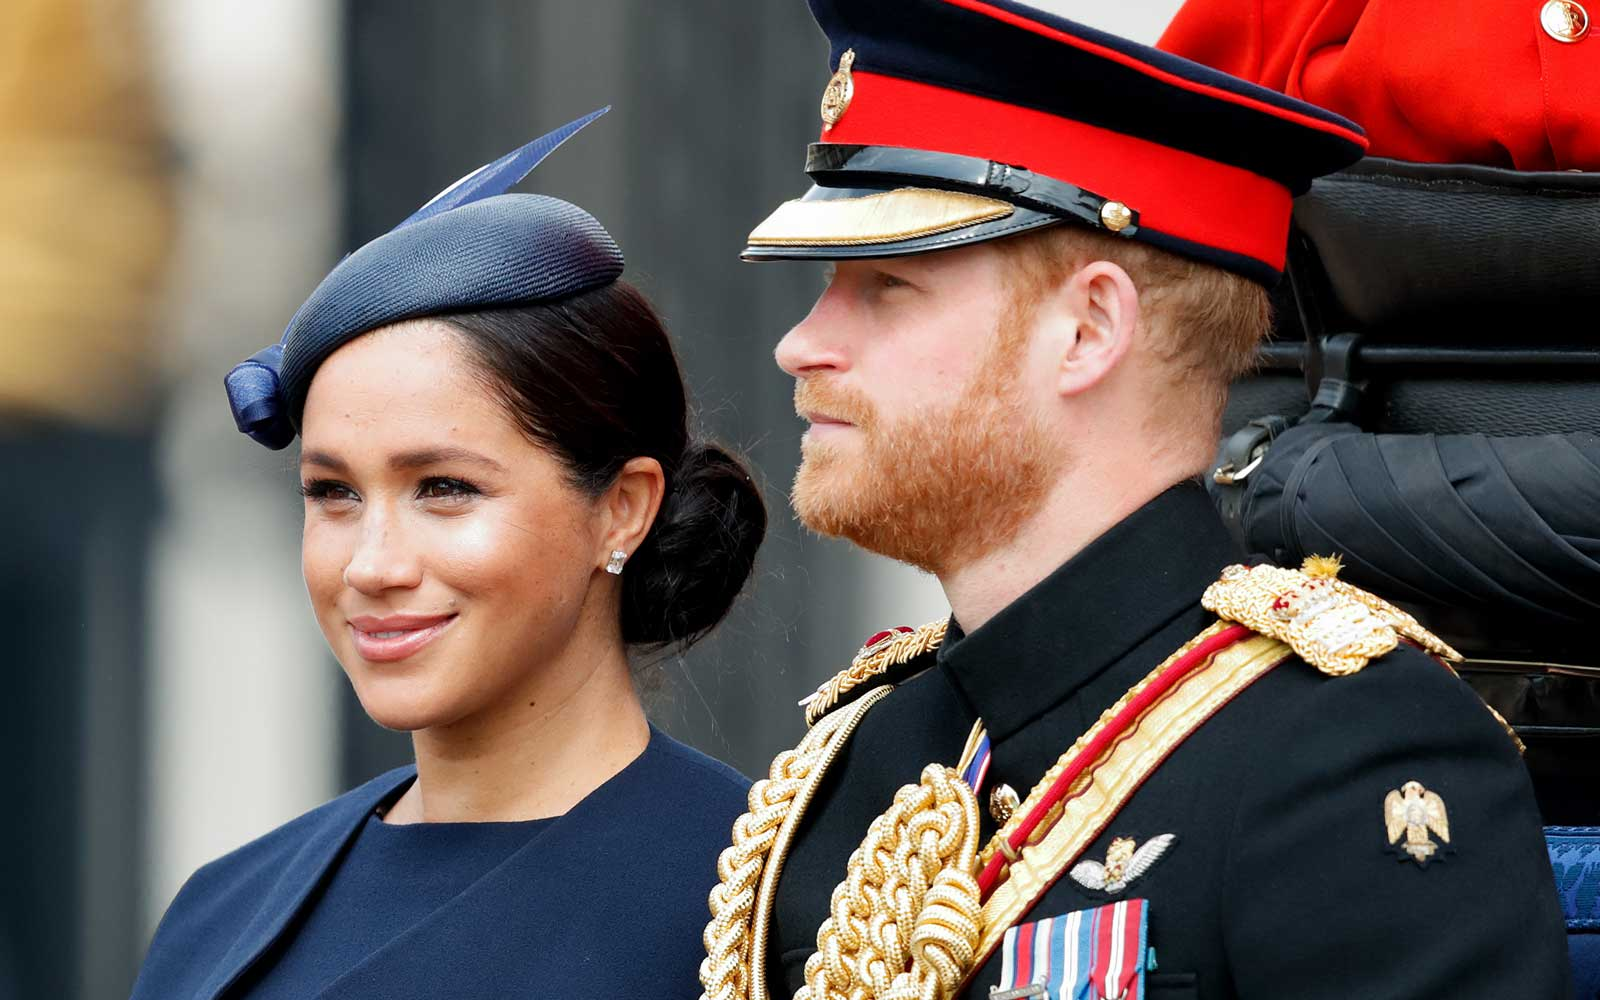 Prince Harry and Meghan Markle Slammed for Flying Private